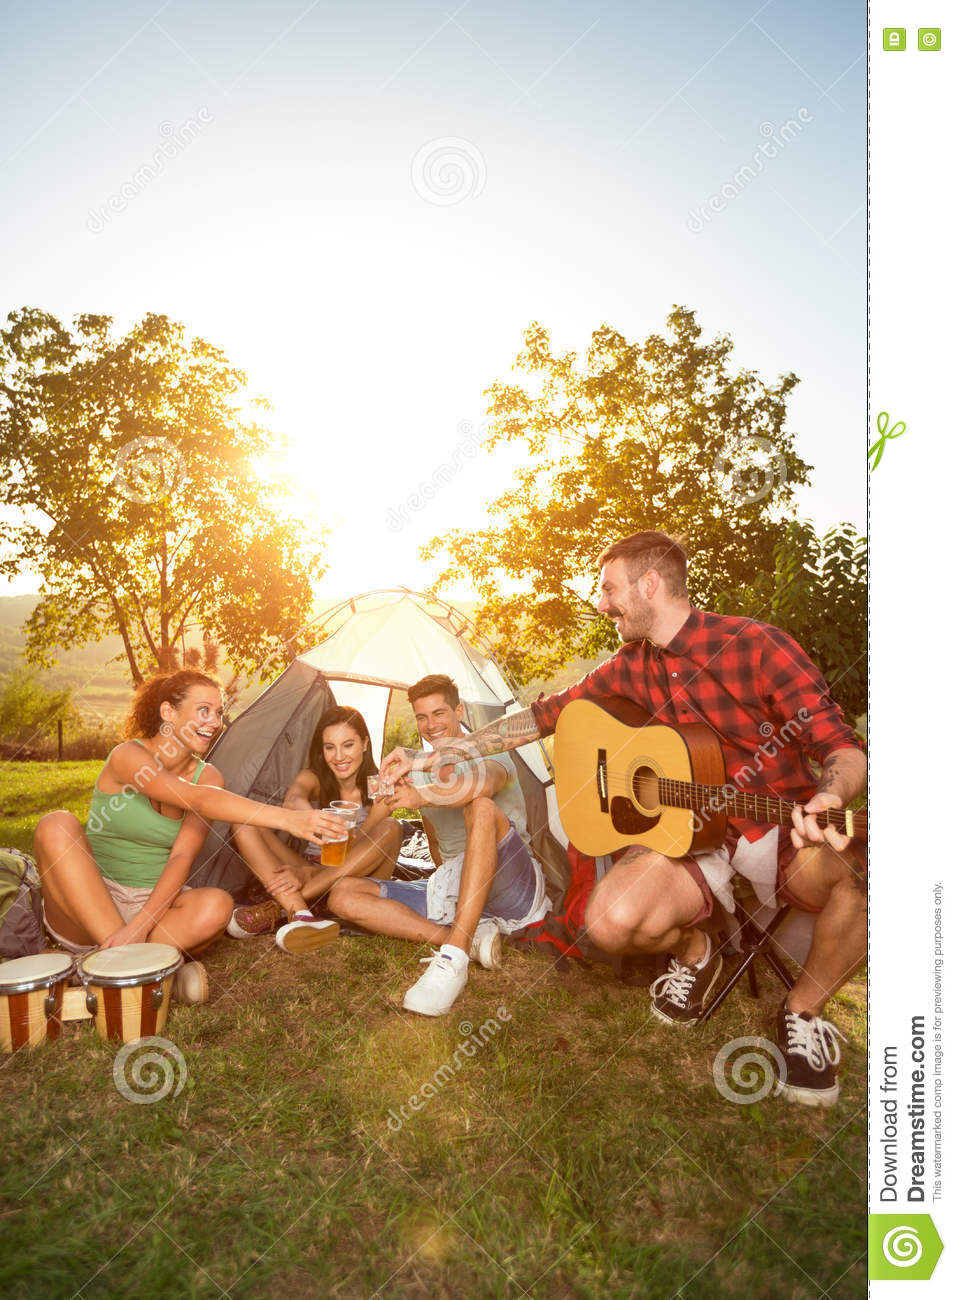 Happy people on camping trip drinking beer